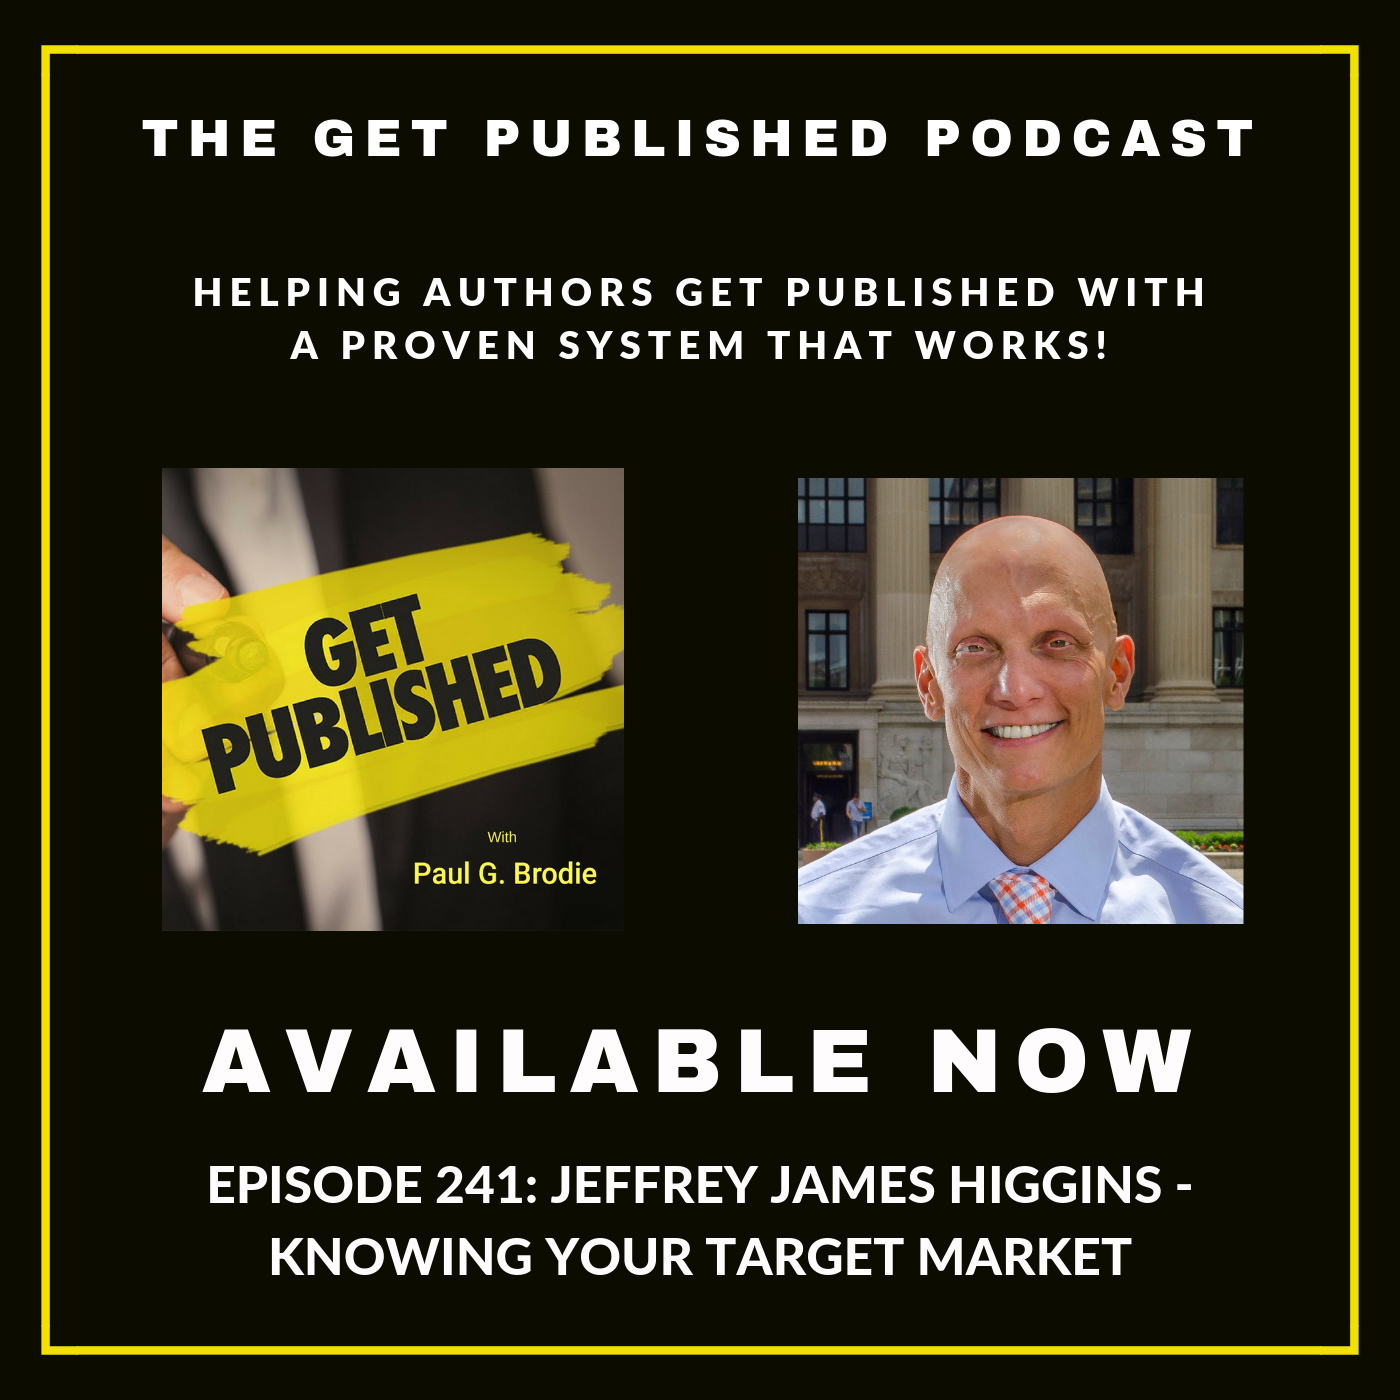 Getting Published Podcast Graphic